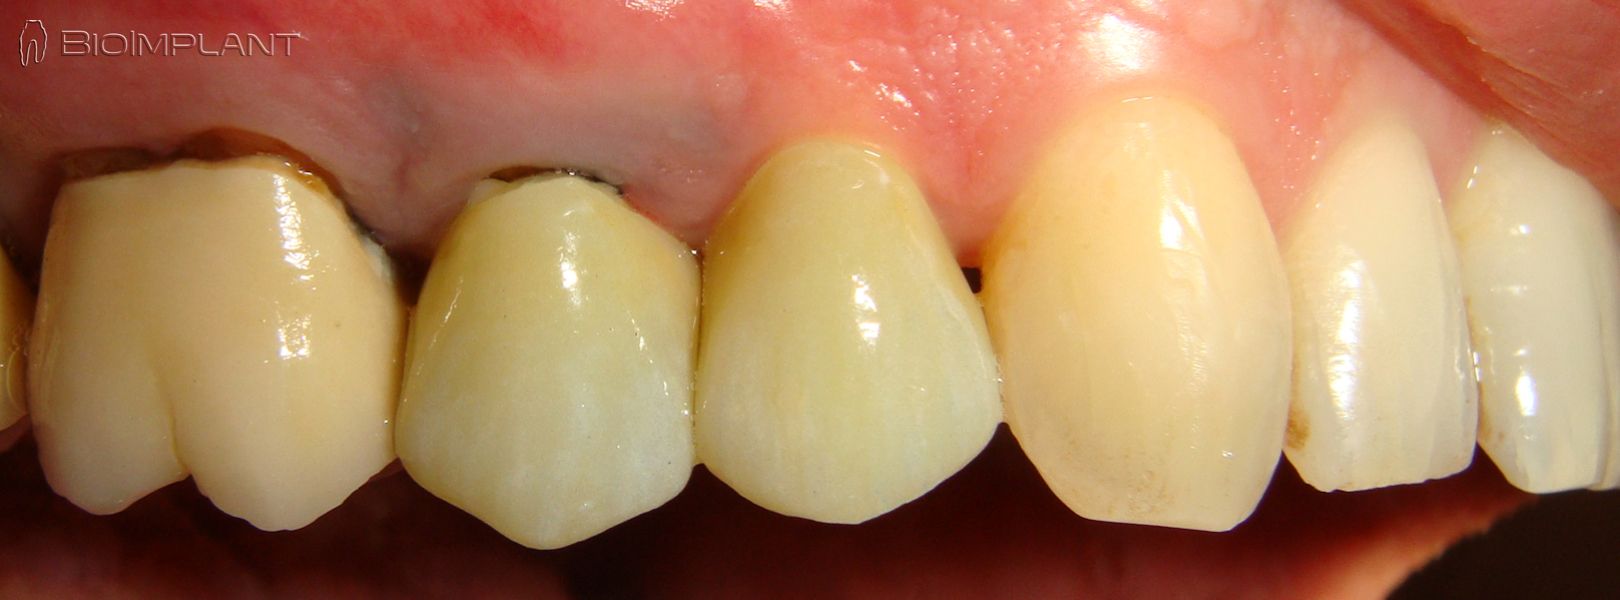 1year-post-op-truly-anatomic-zirconia-dental-implant-first-premolar